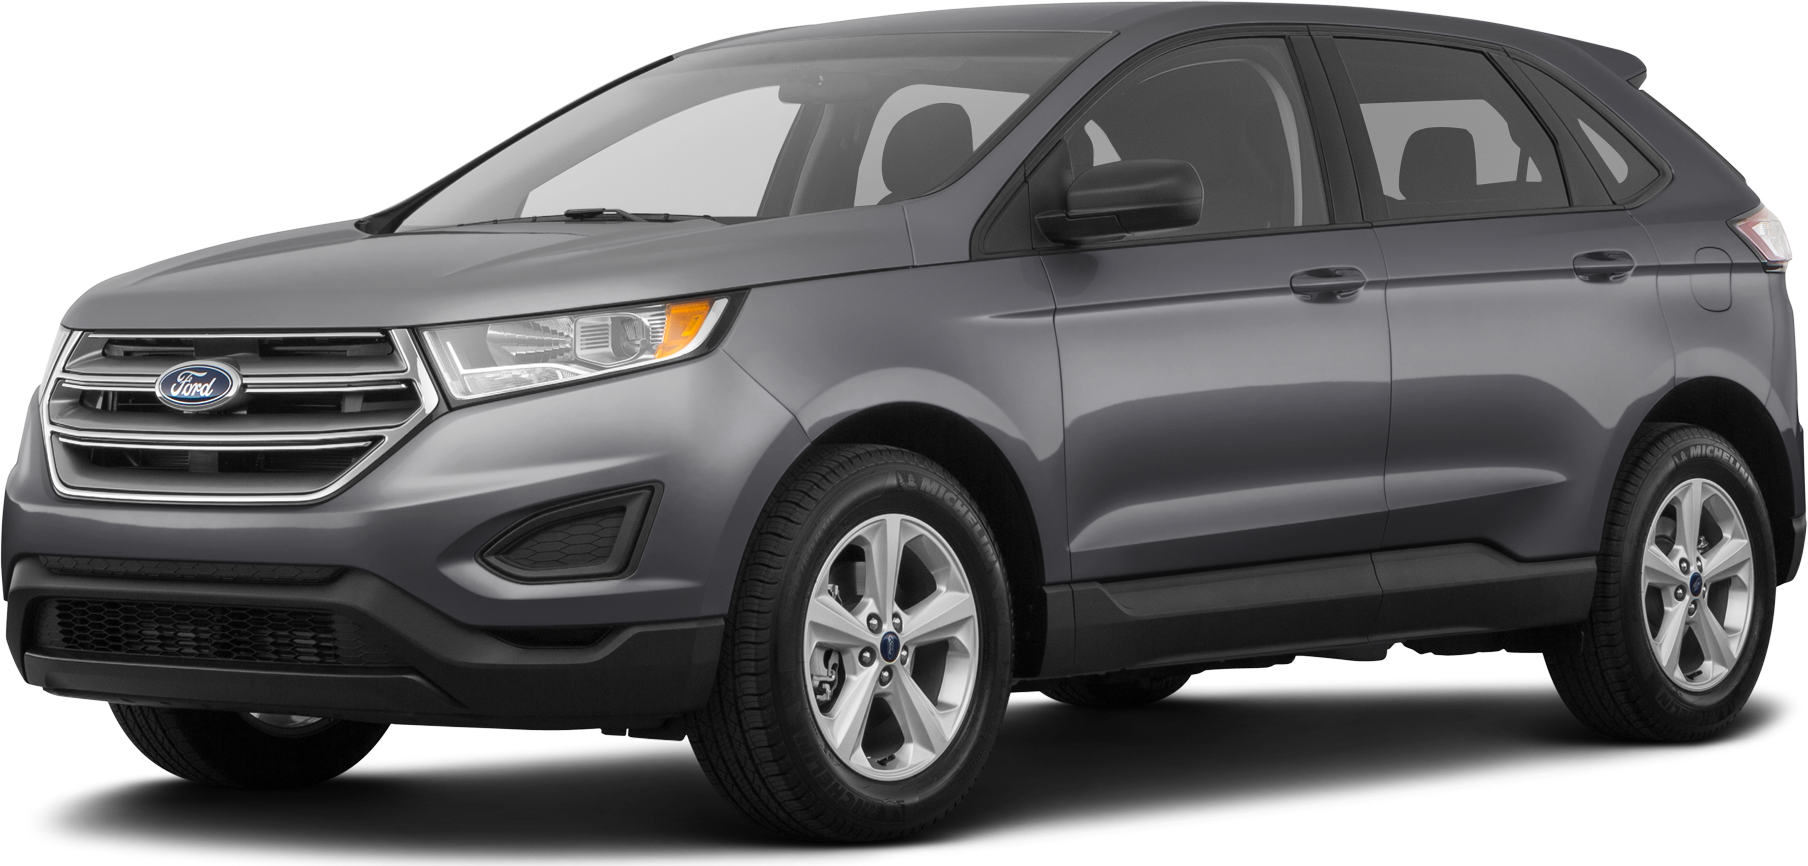 2020 Toyota Highlander Prices Reviews Pictures Kelley Blue Book